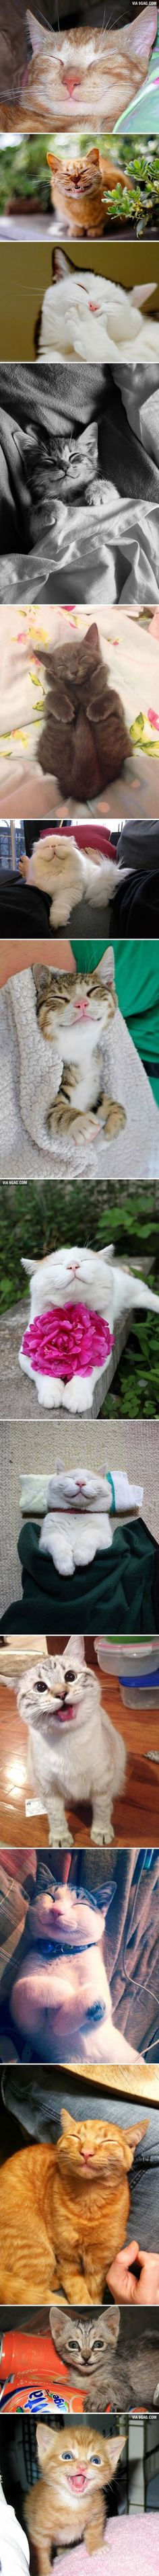 The Happiest Cats cute animals cat cats adorable animal kittens pets kitten funny animals funny cats Happy Animals, Animals And Pets, Funny Animals, Cute Animals, Cute Cats, Funny Cats, Raining Cats And Dogs, Love Pet, Cats And Kittens